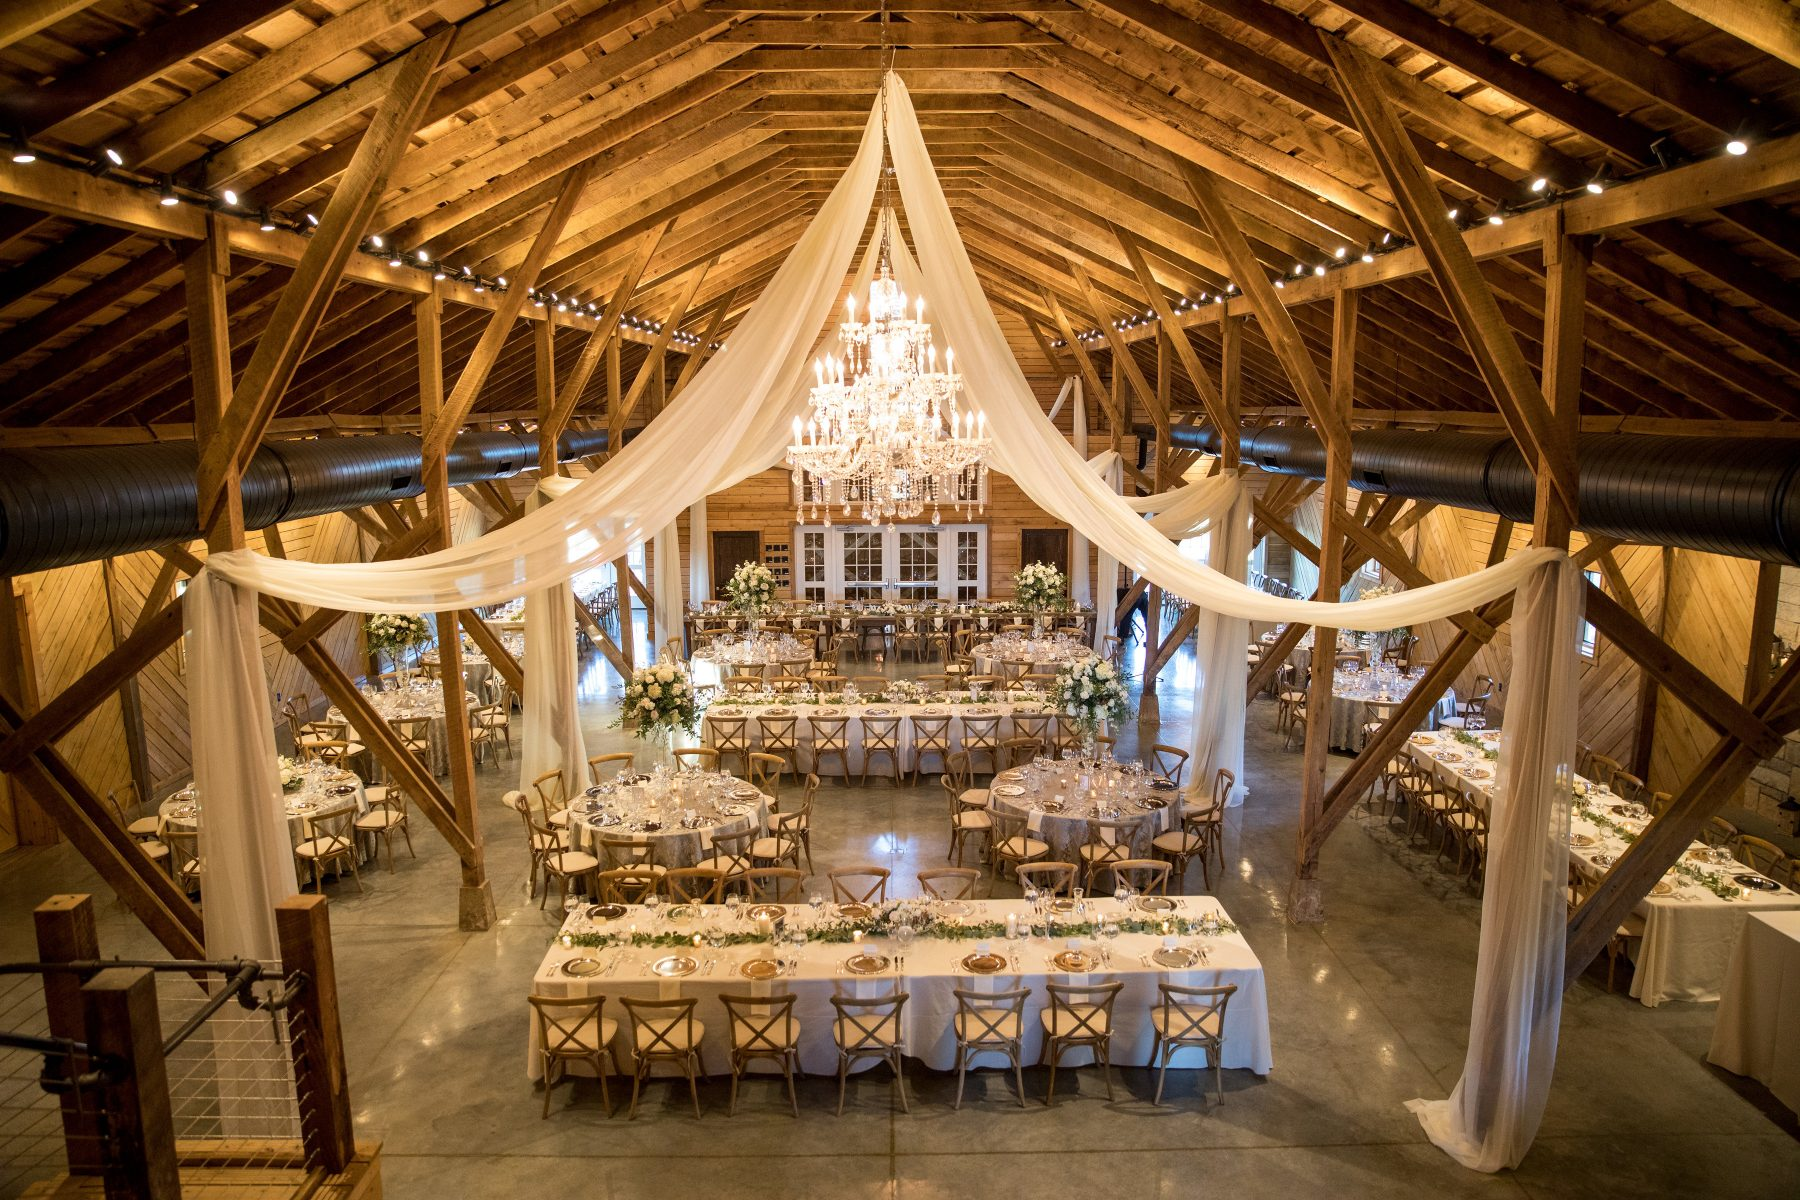 Interior of The Lodge at Mount Ida Farm & Vineyard at Mount Ida Reserve decorated for Wedding with white drapes, greenery